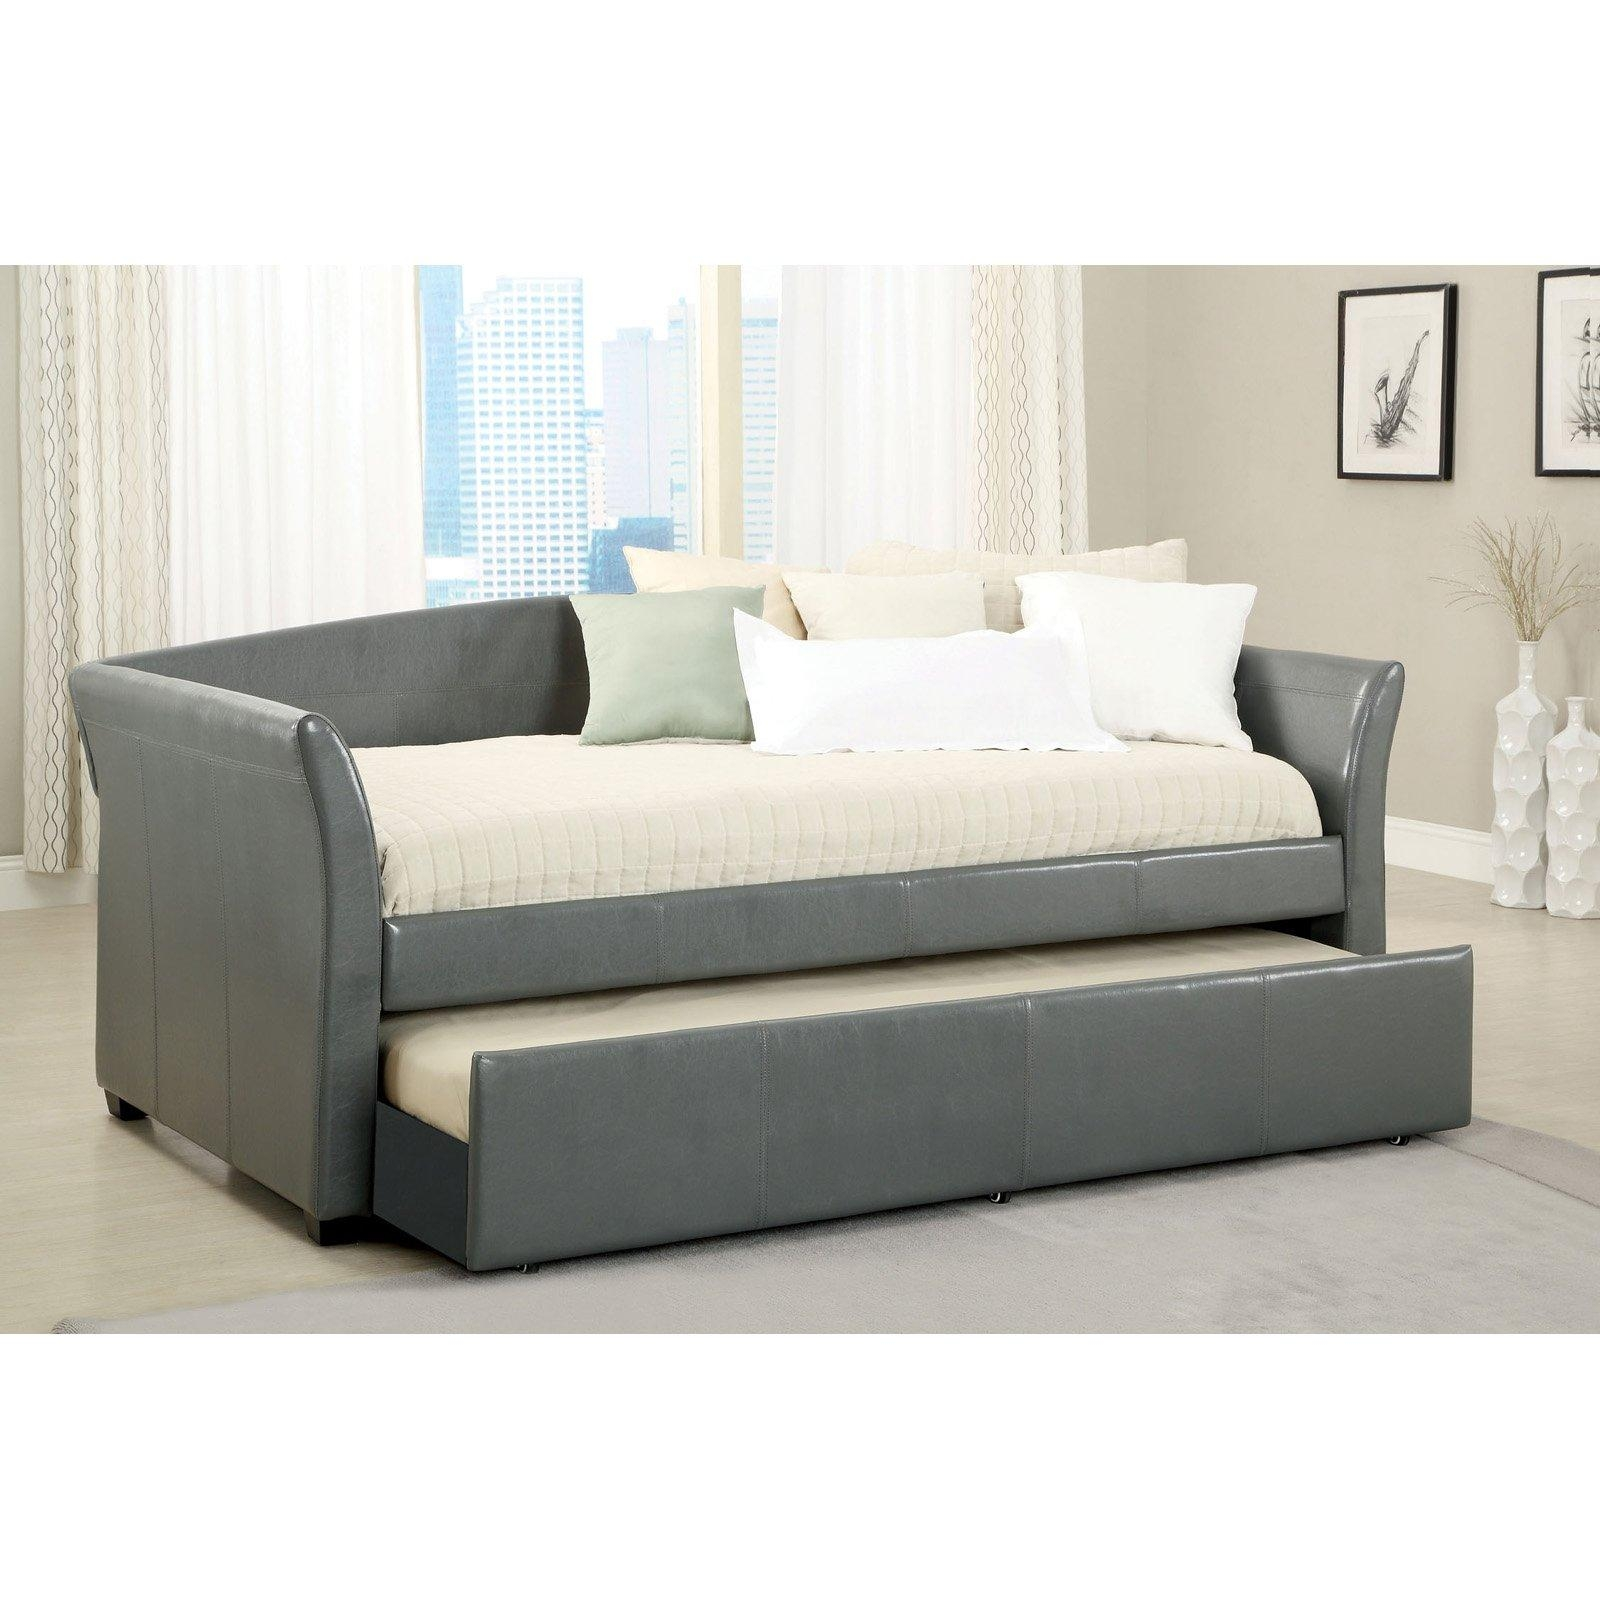 Sofa Daybed With Trundle | Best Sofas Ideas – Sofascouch With Regard To Sofas With Trundle (View 5 of 20)